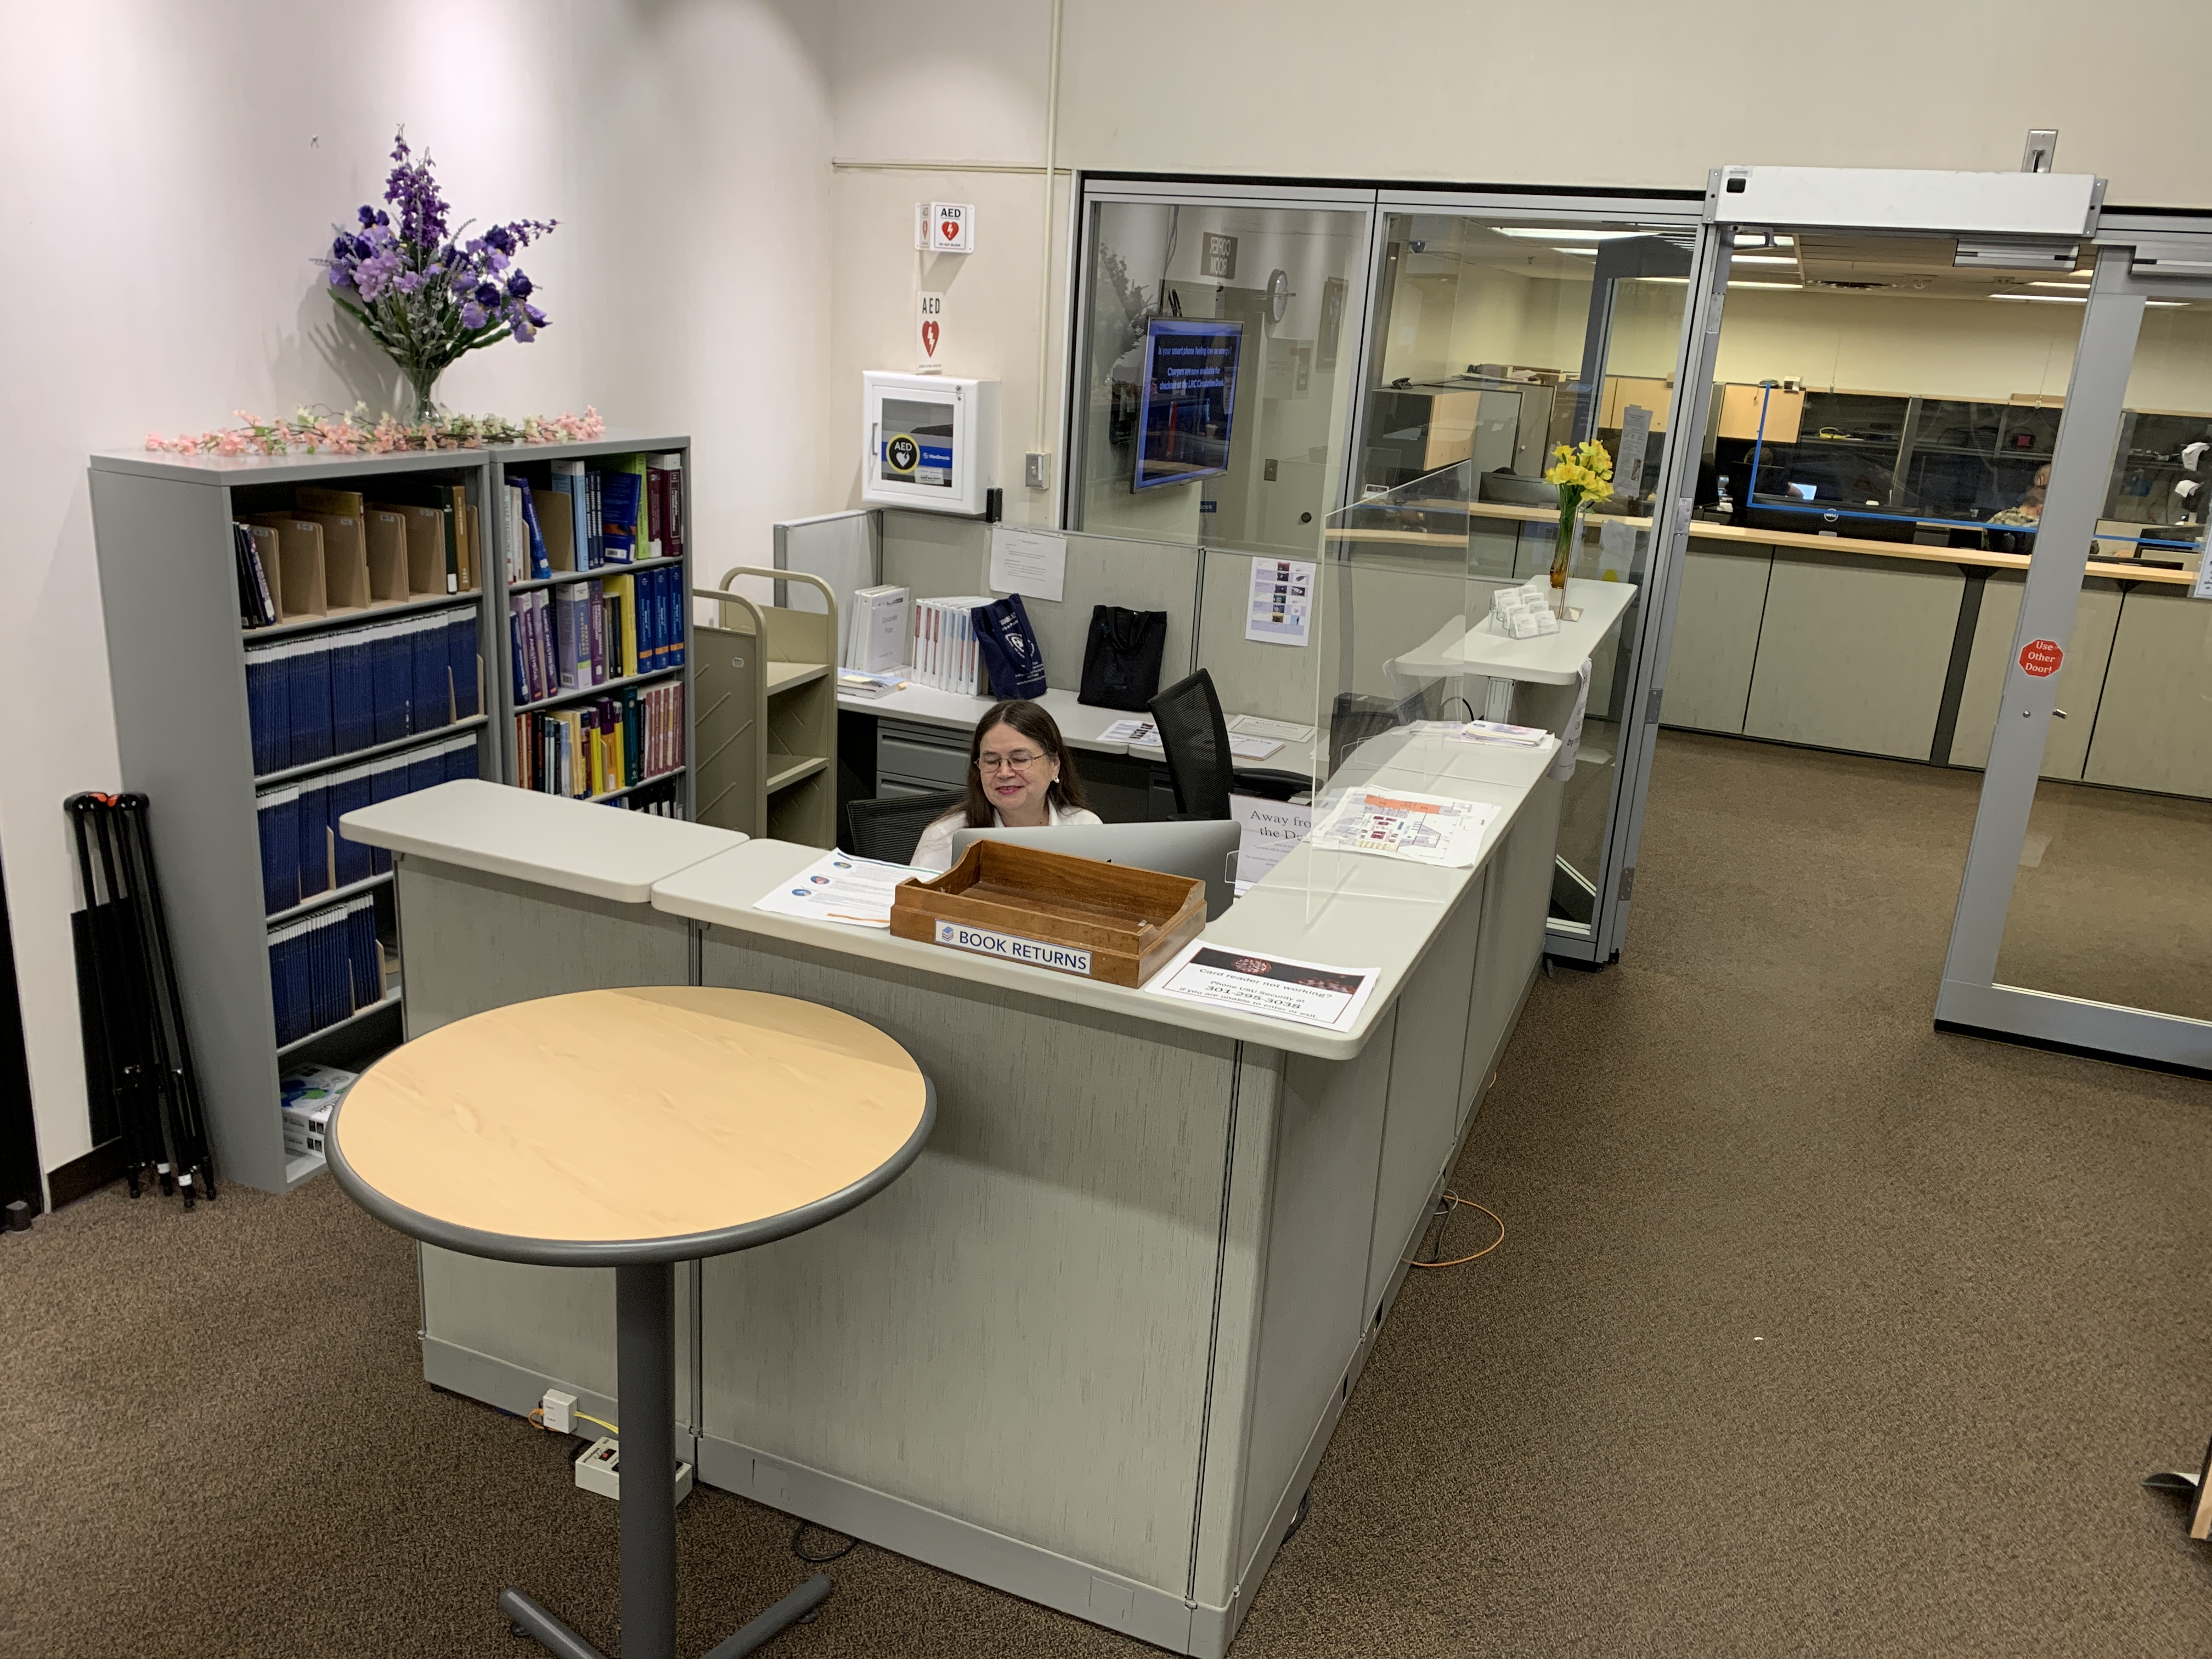 An overhead view of the LRC Circulation Desk.